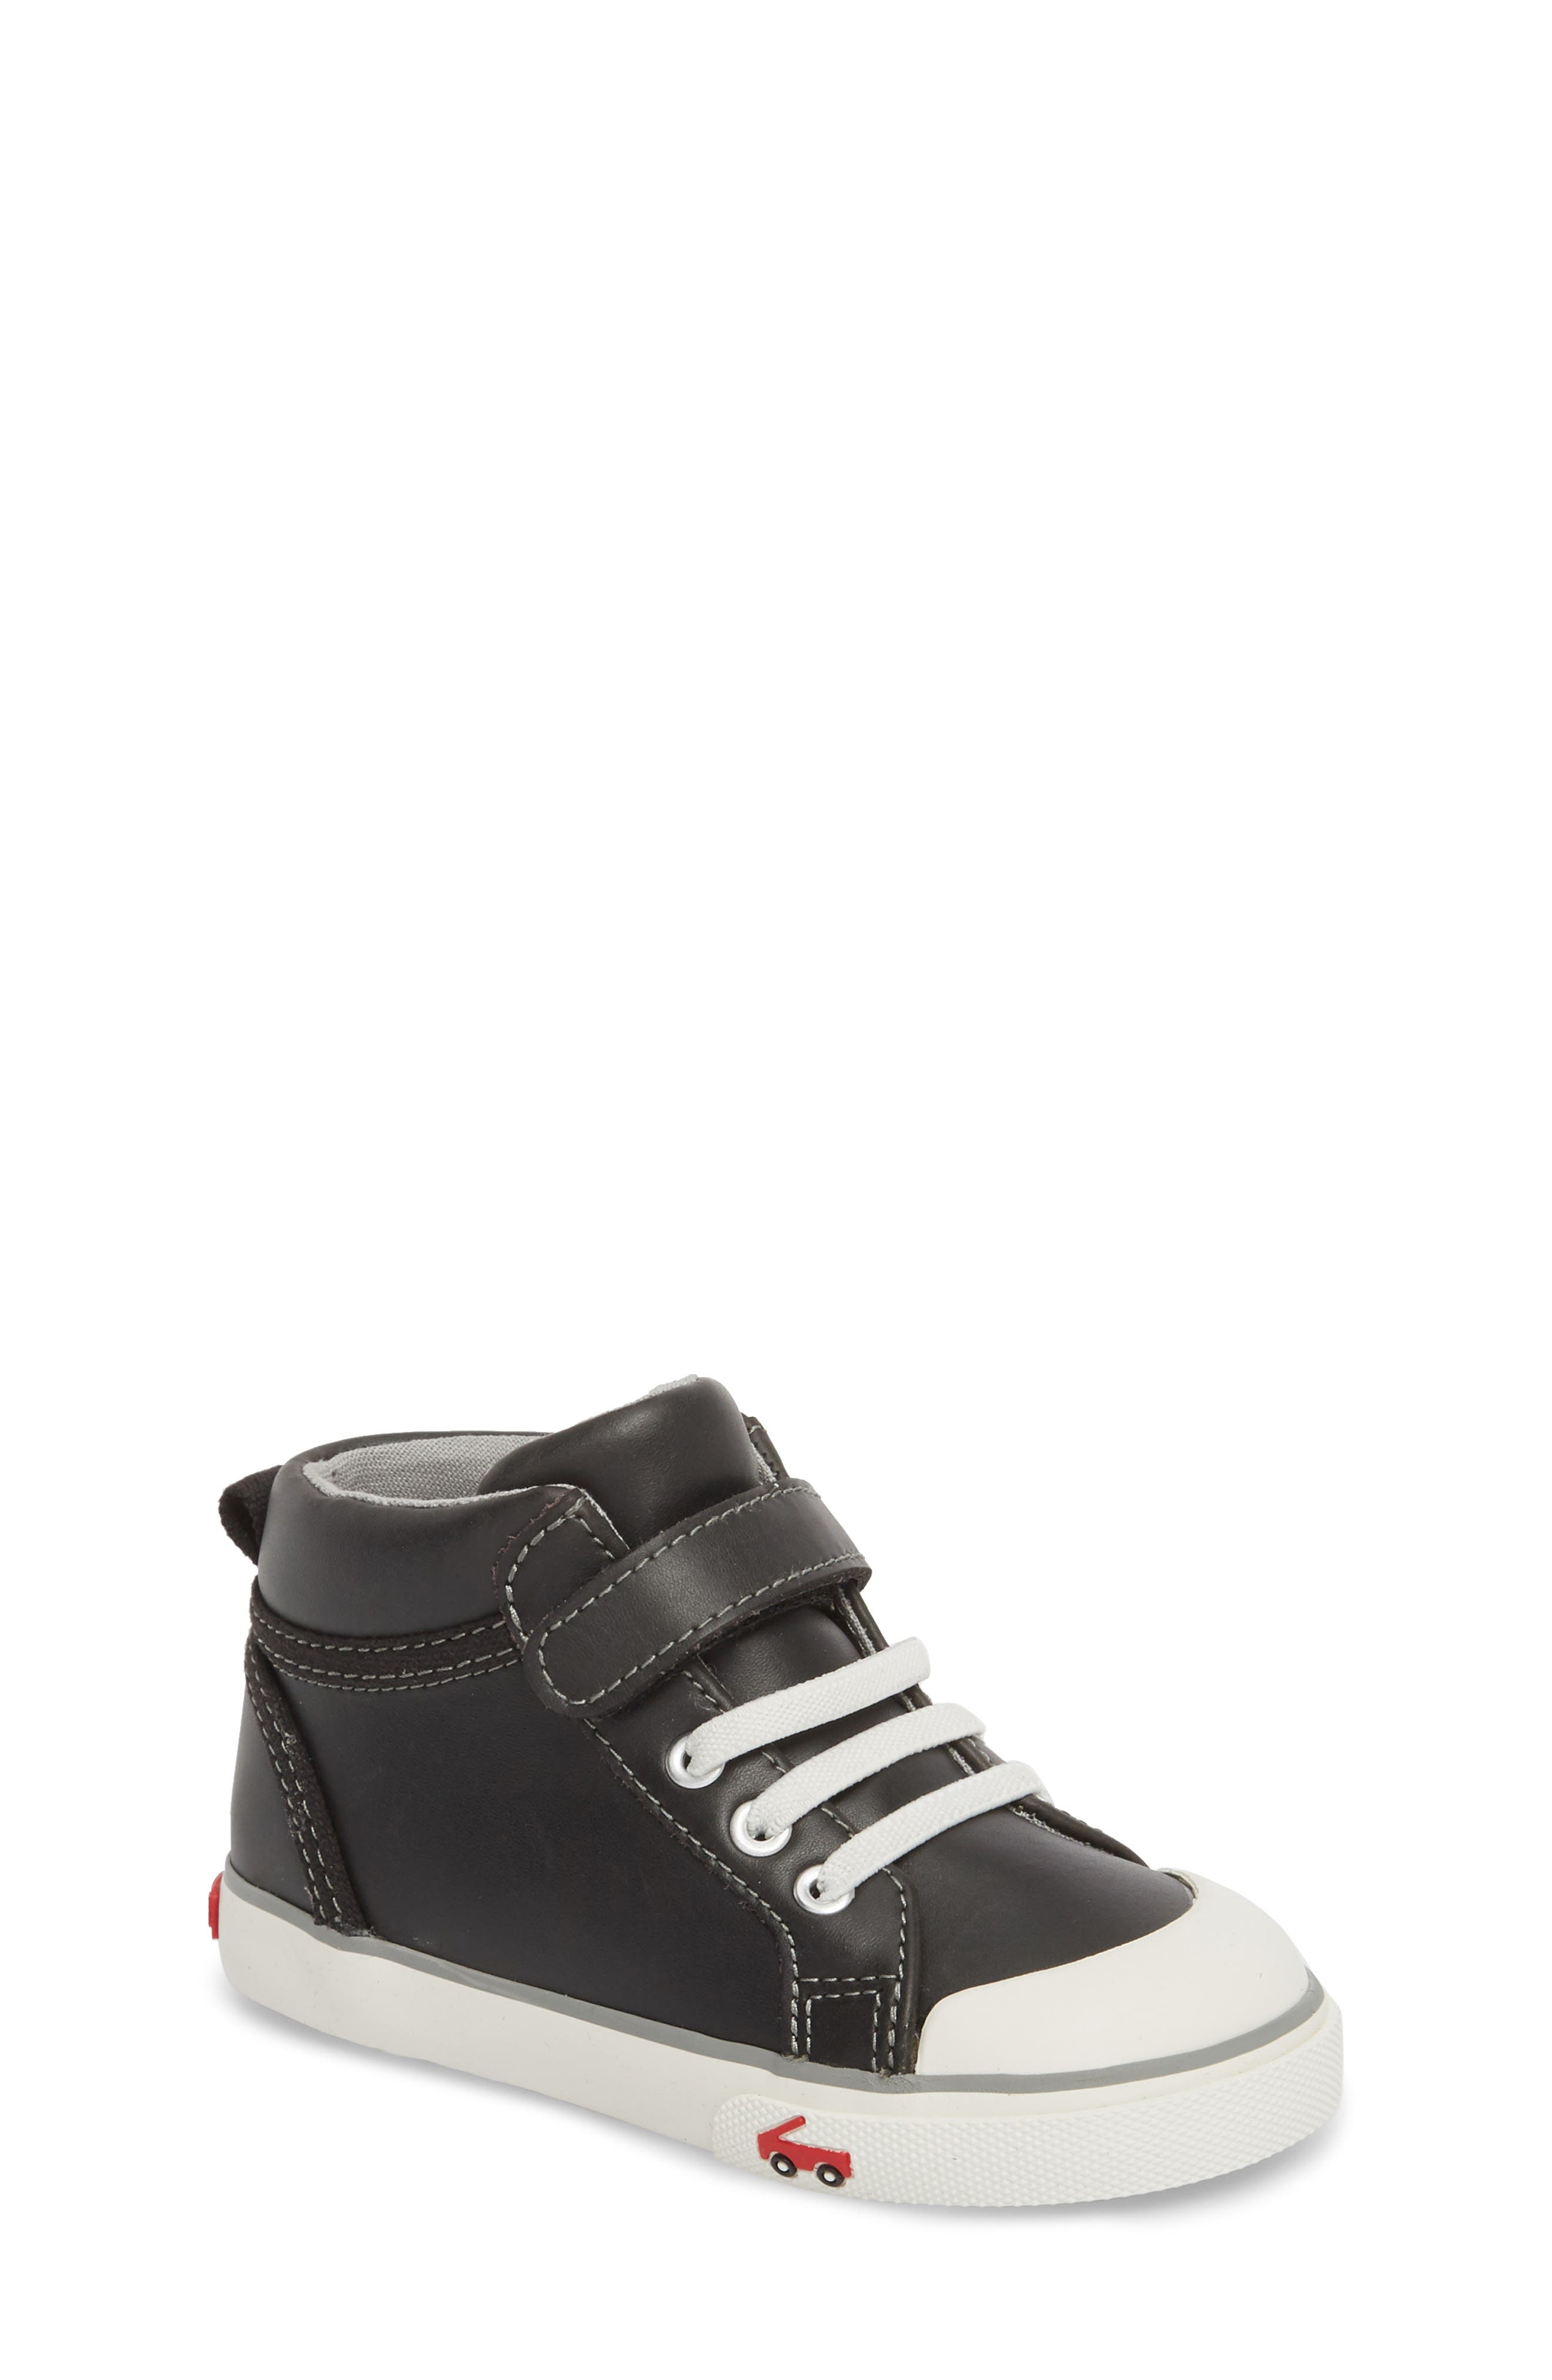 'Peyton' High Top Sneaker,                             Main thumbnail 1, color,                             Black Leather